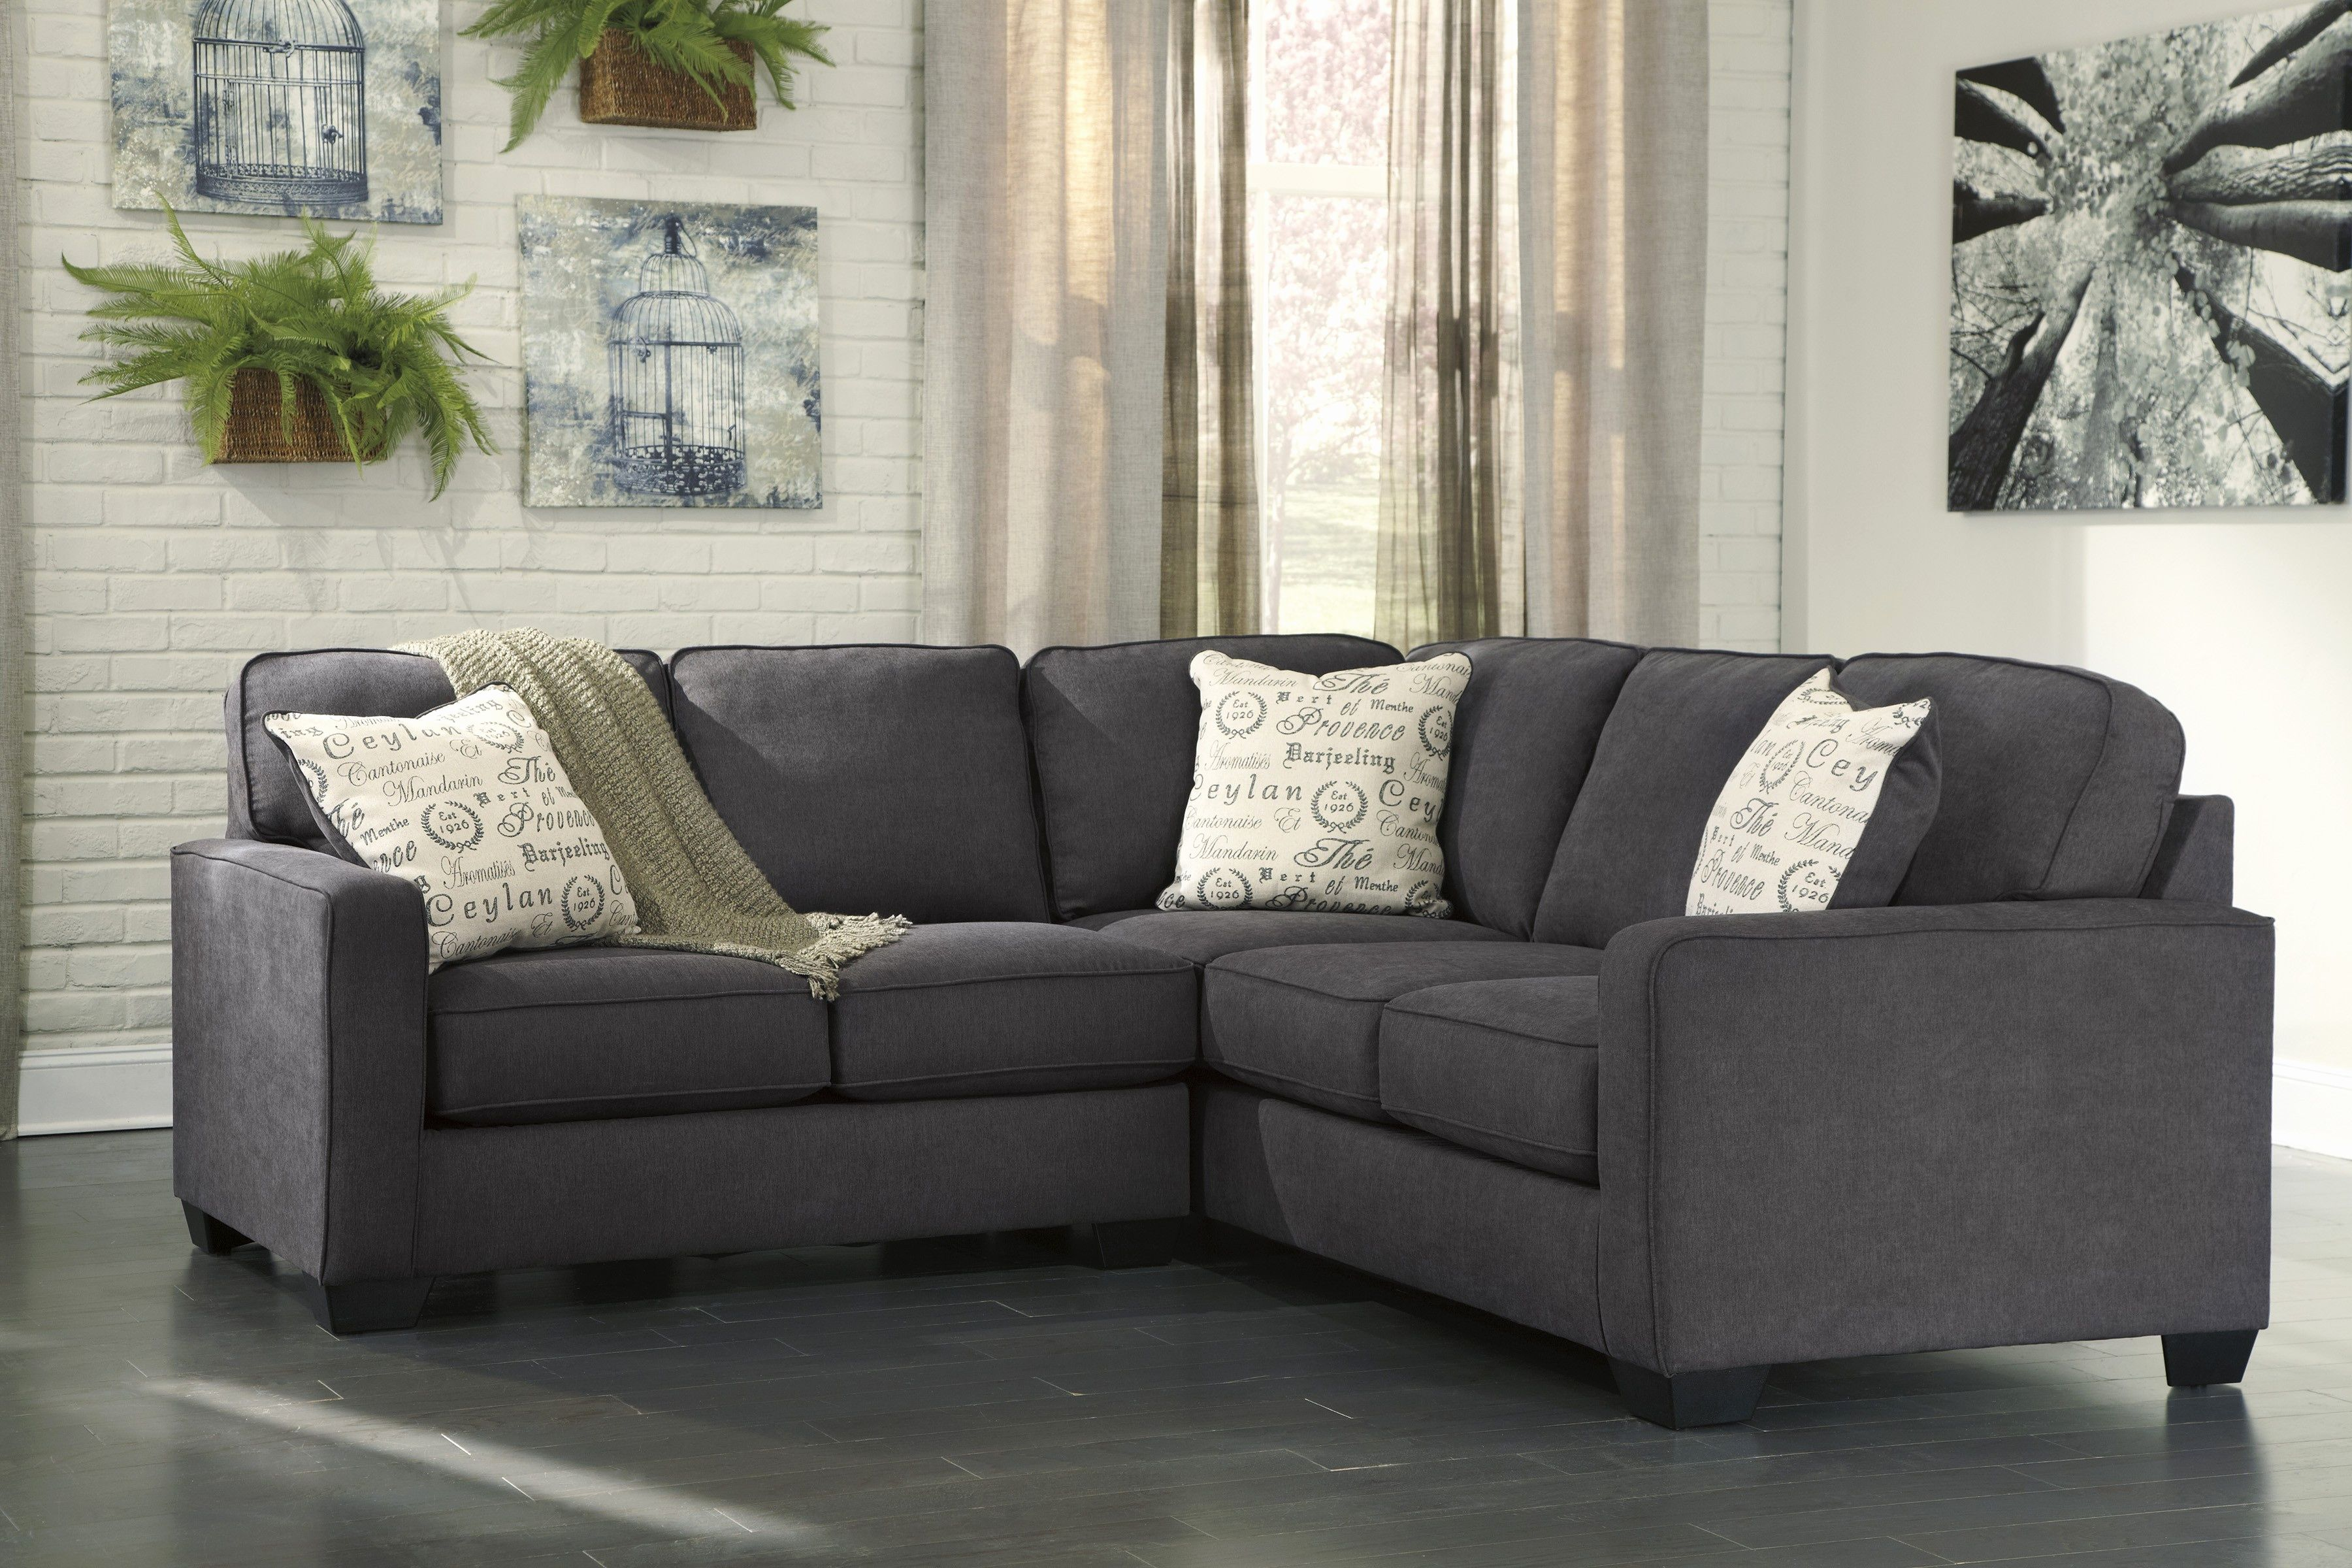 Best Lovely 2 Piece Sectional Sofa Pics Alenya Charcoal 2 Piece 400 x 300